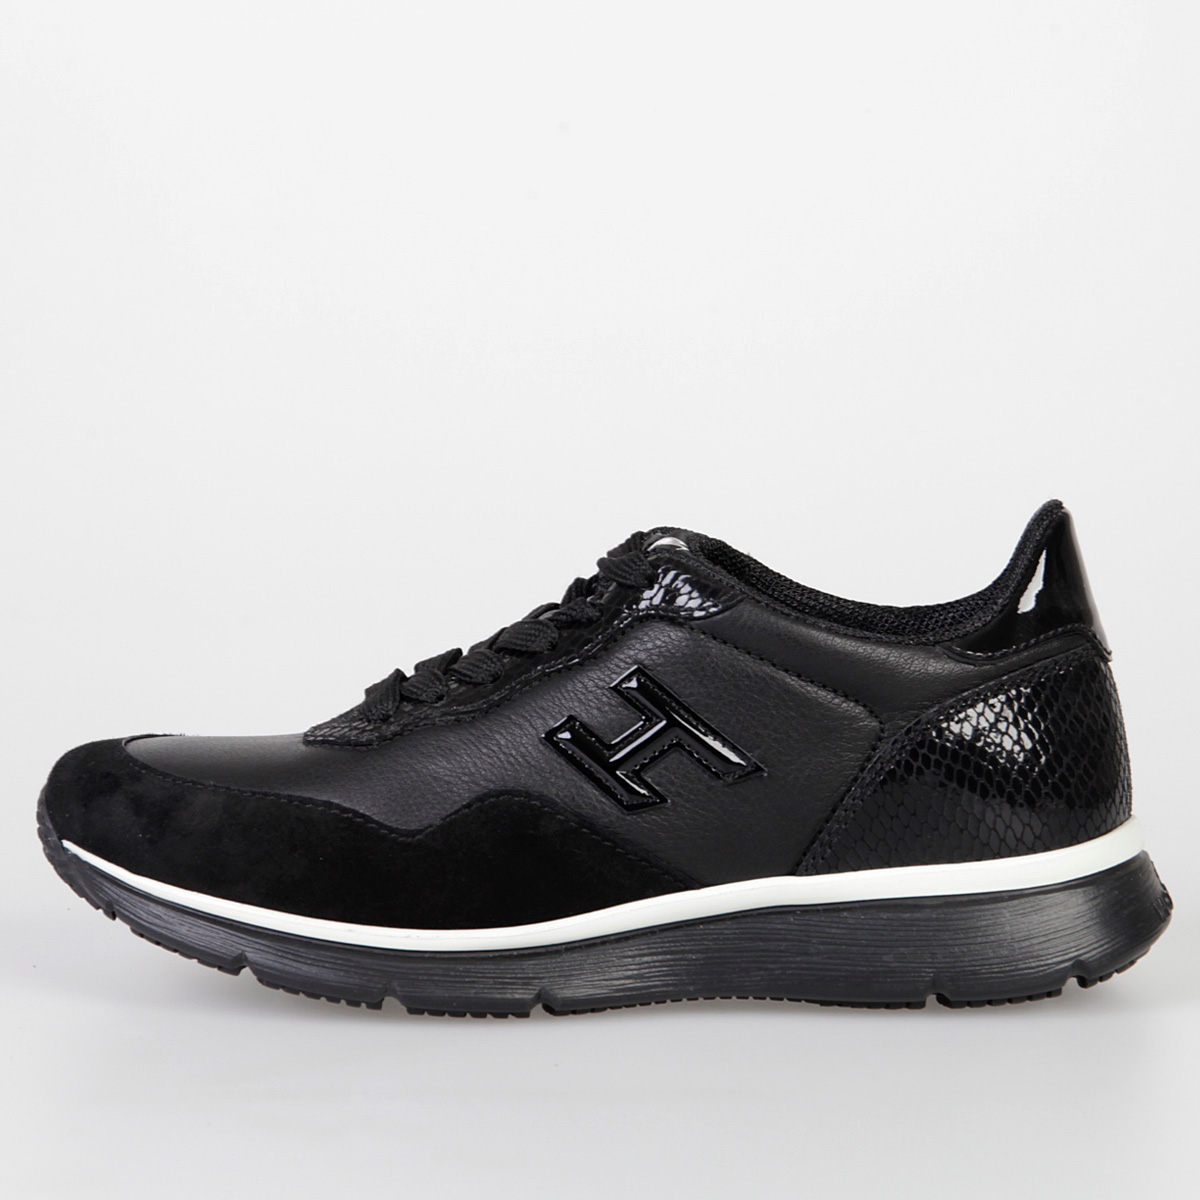 282ebdf4cf Hogan Women Leather TRADITIONAL H254 Sneakers - Glamood Outlet